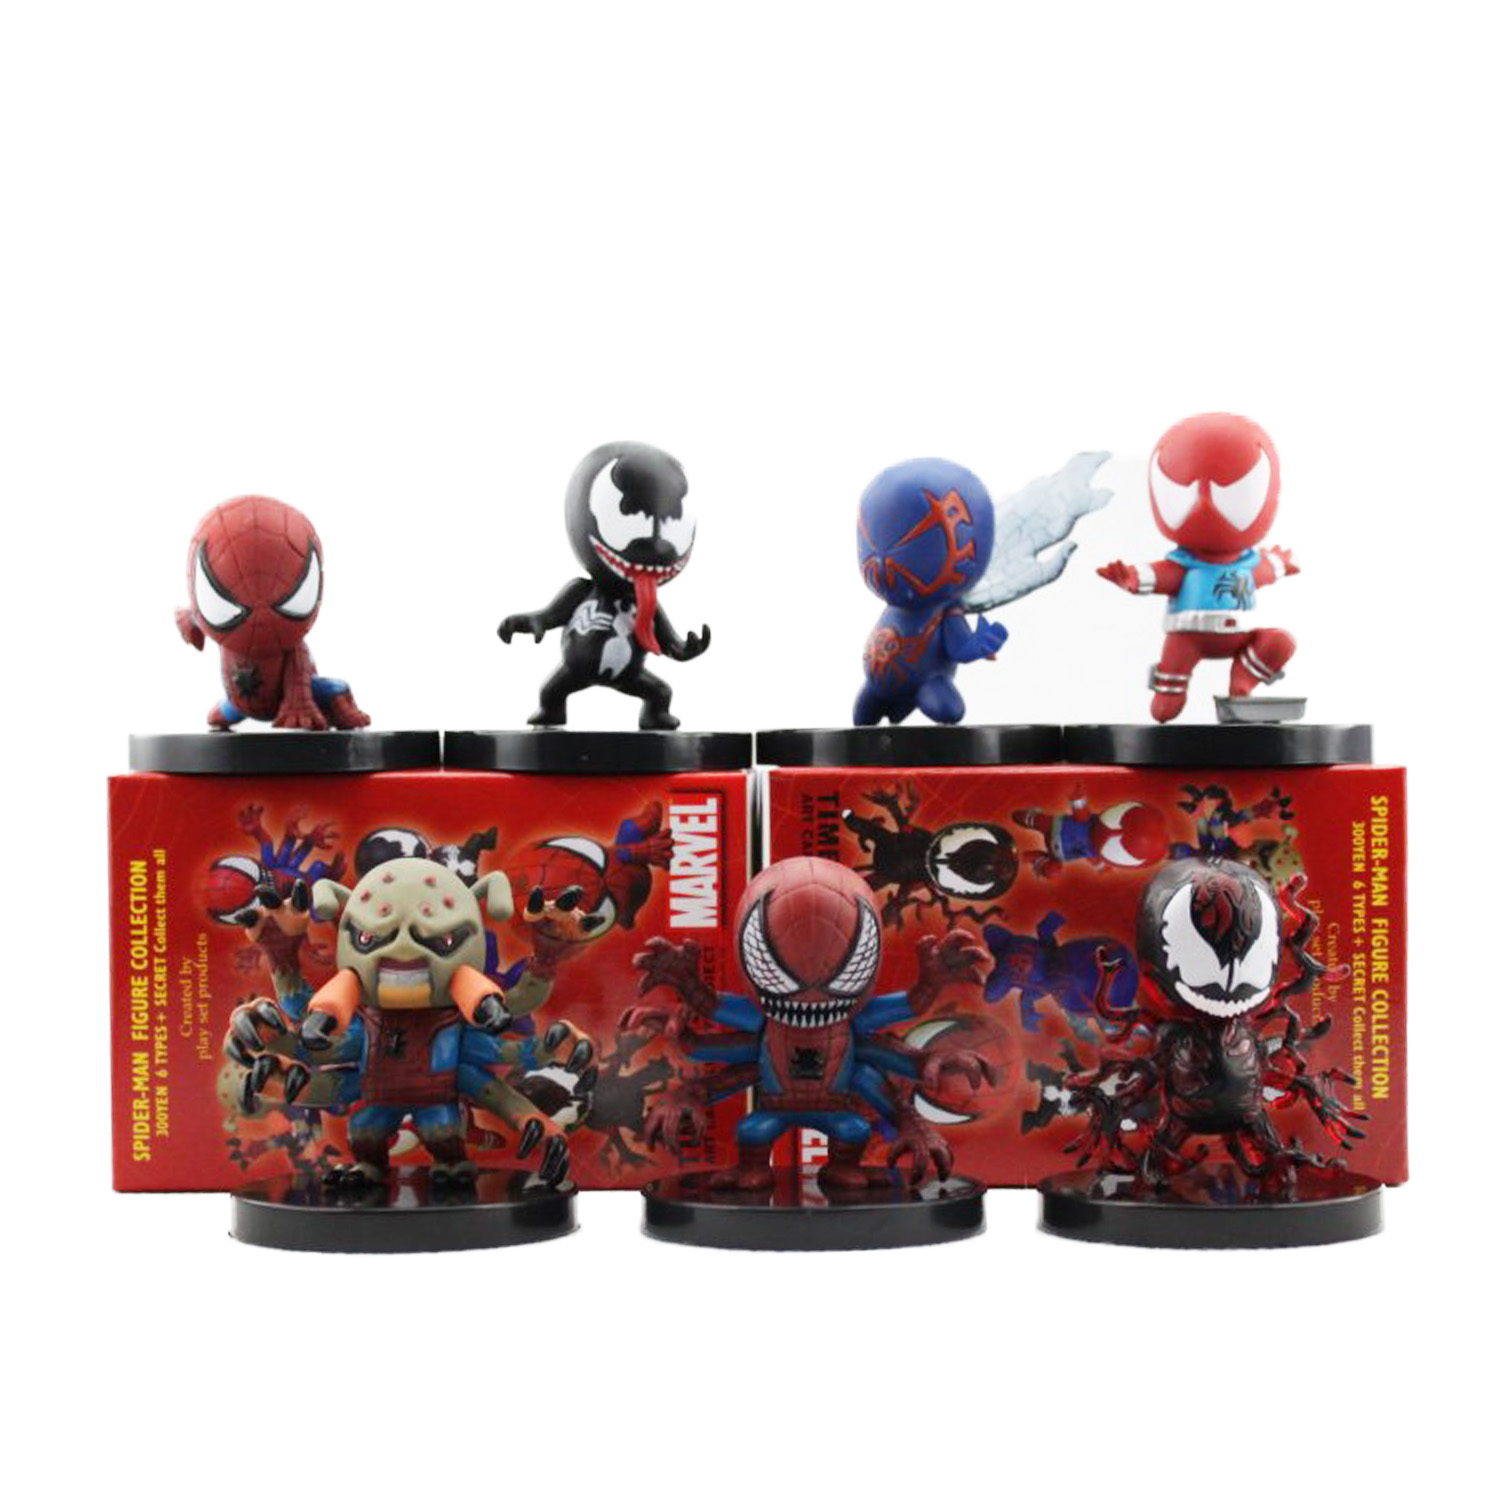 Spiderman 7pcs/set 6cm The Amazing Spiderman Nendoroid Marvel Action Figure Collection Model Dolls Cute Kids Gifts Toys 1203 недорого